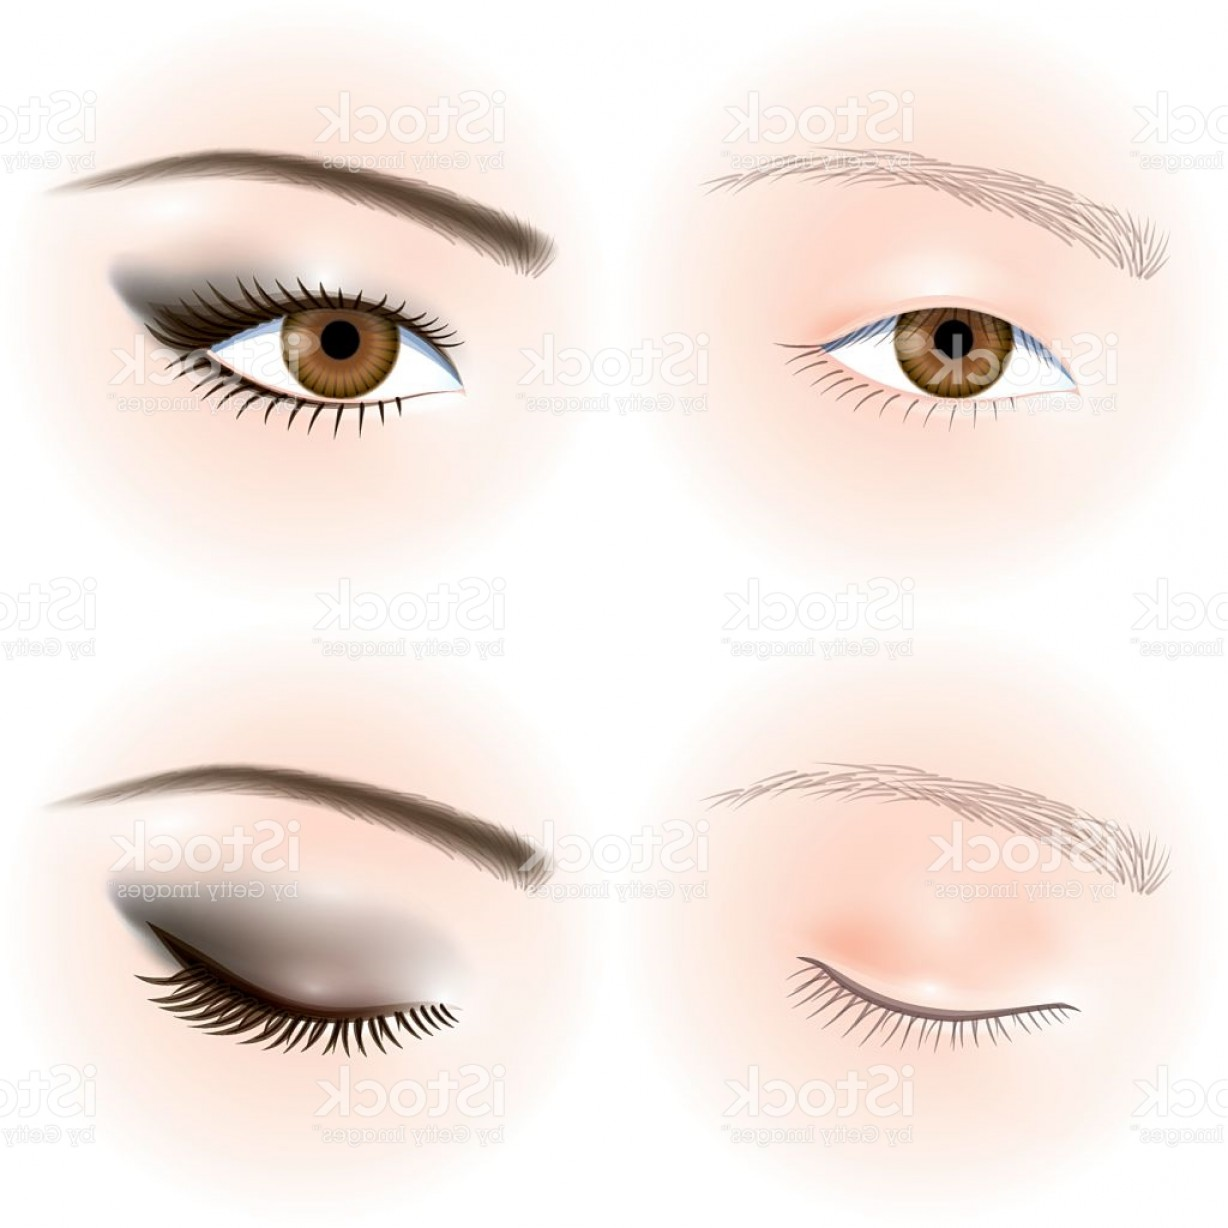 Vector Illustration Eyes Makeup: Asians Eyes Eye Makeup Gm